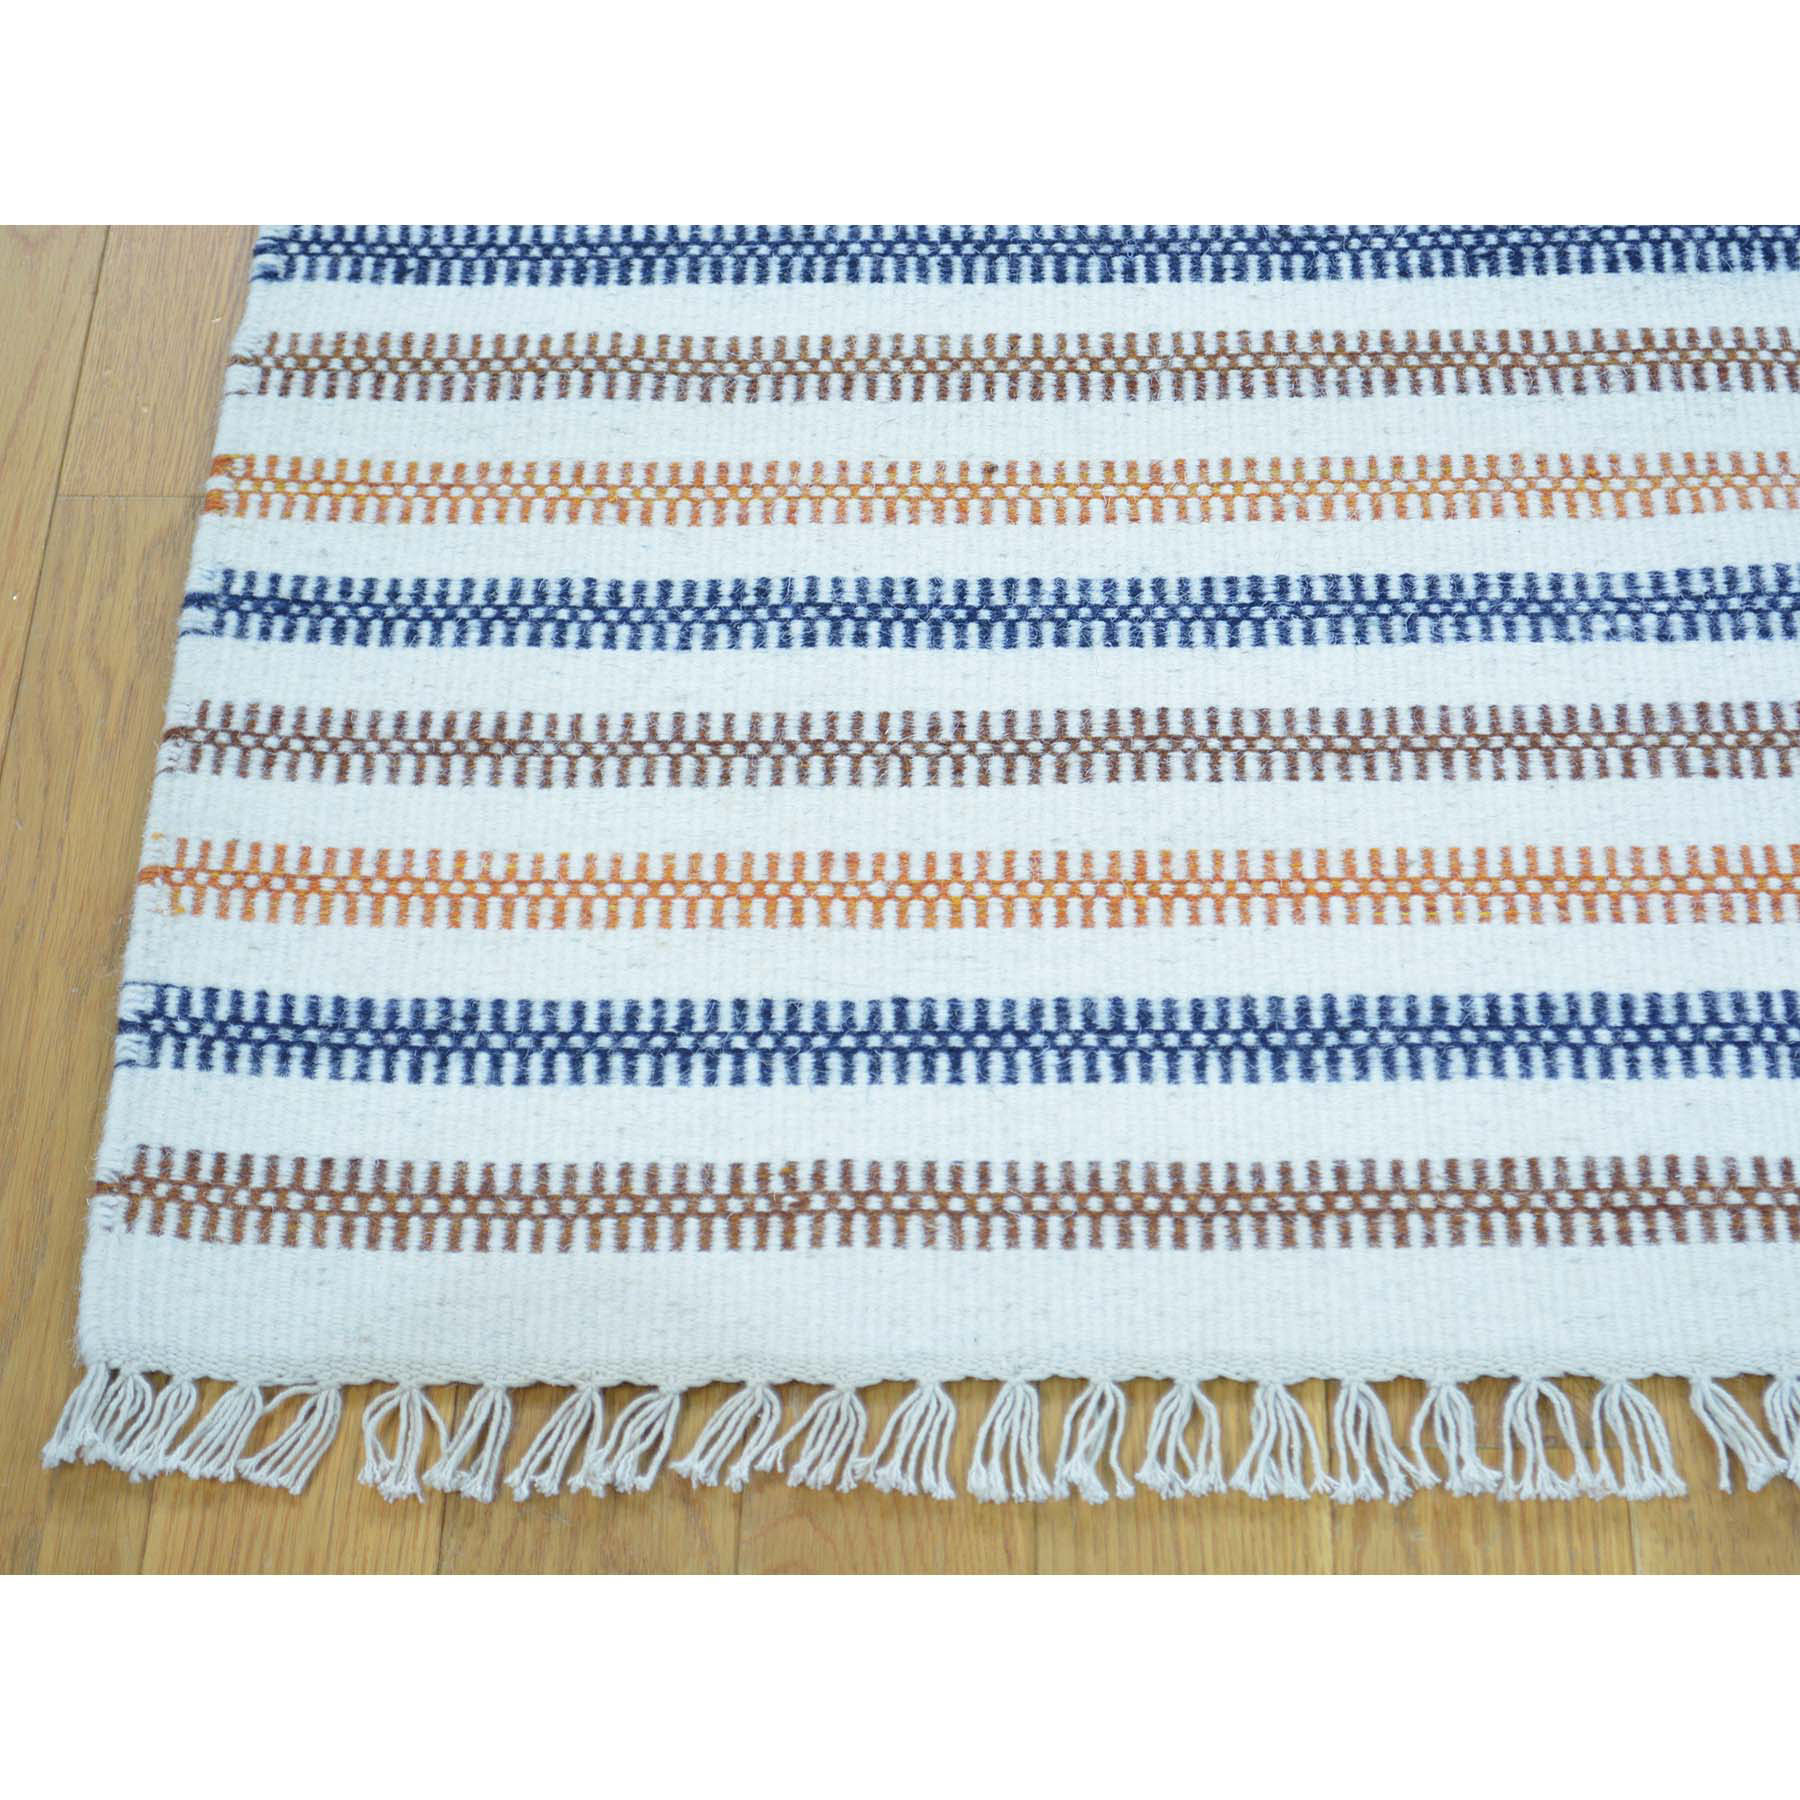 4-7 x6-8  Hand Woven Durie Kilim Striped Flat Weave Oriental Rug